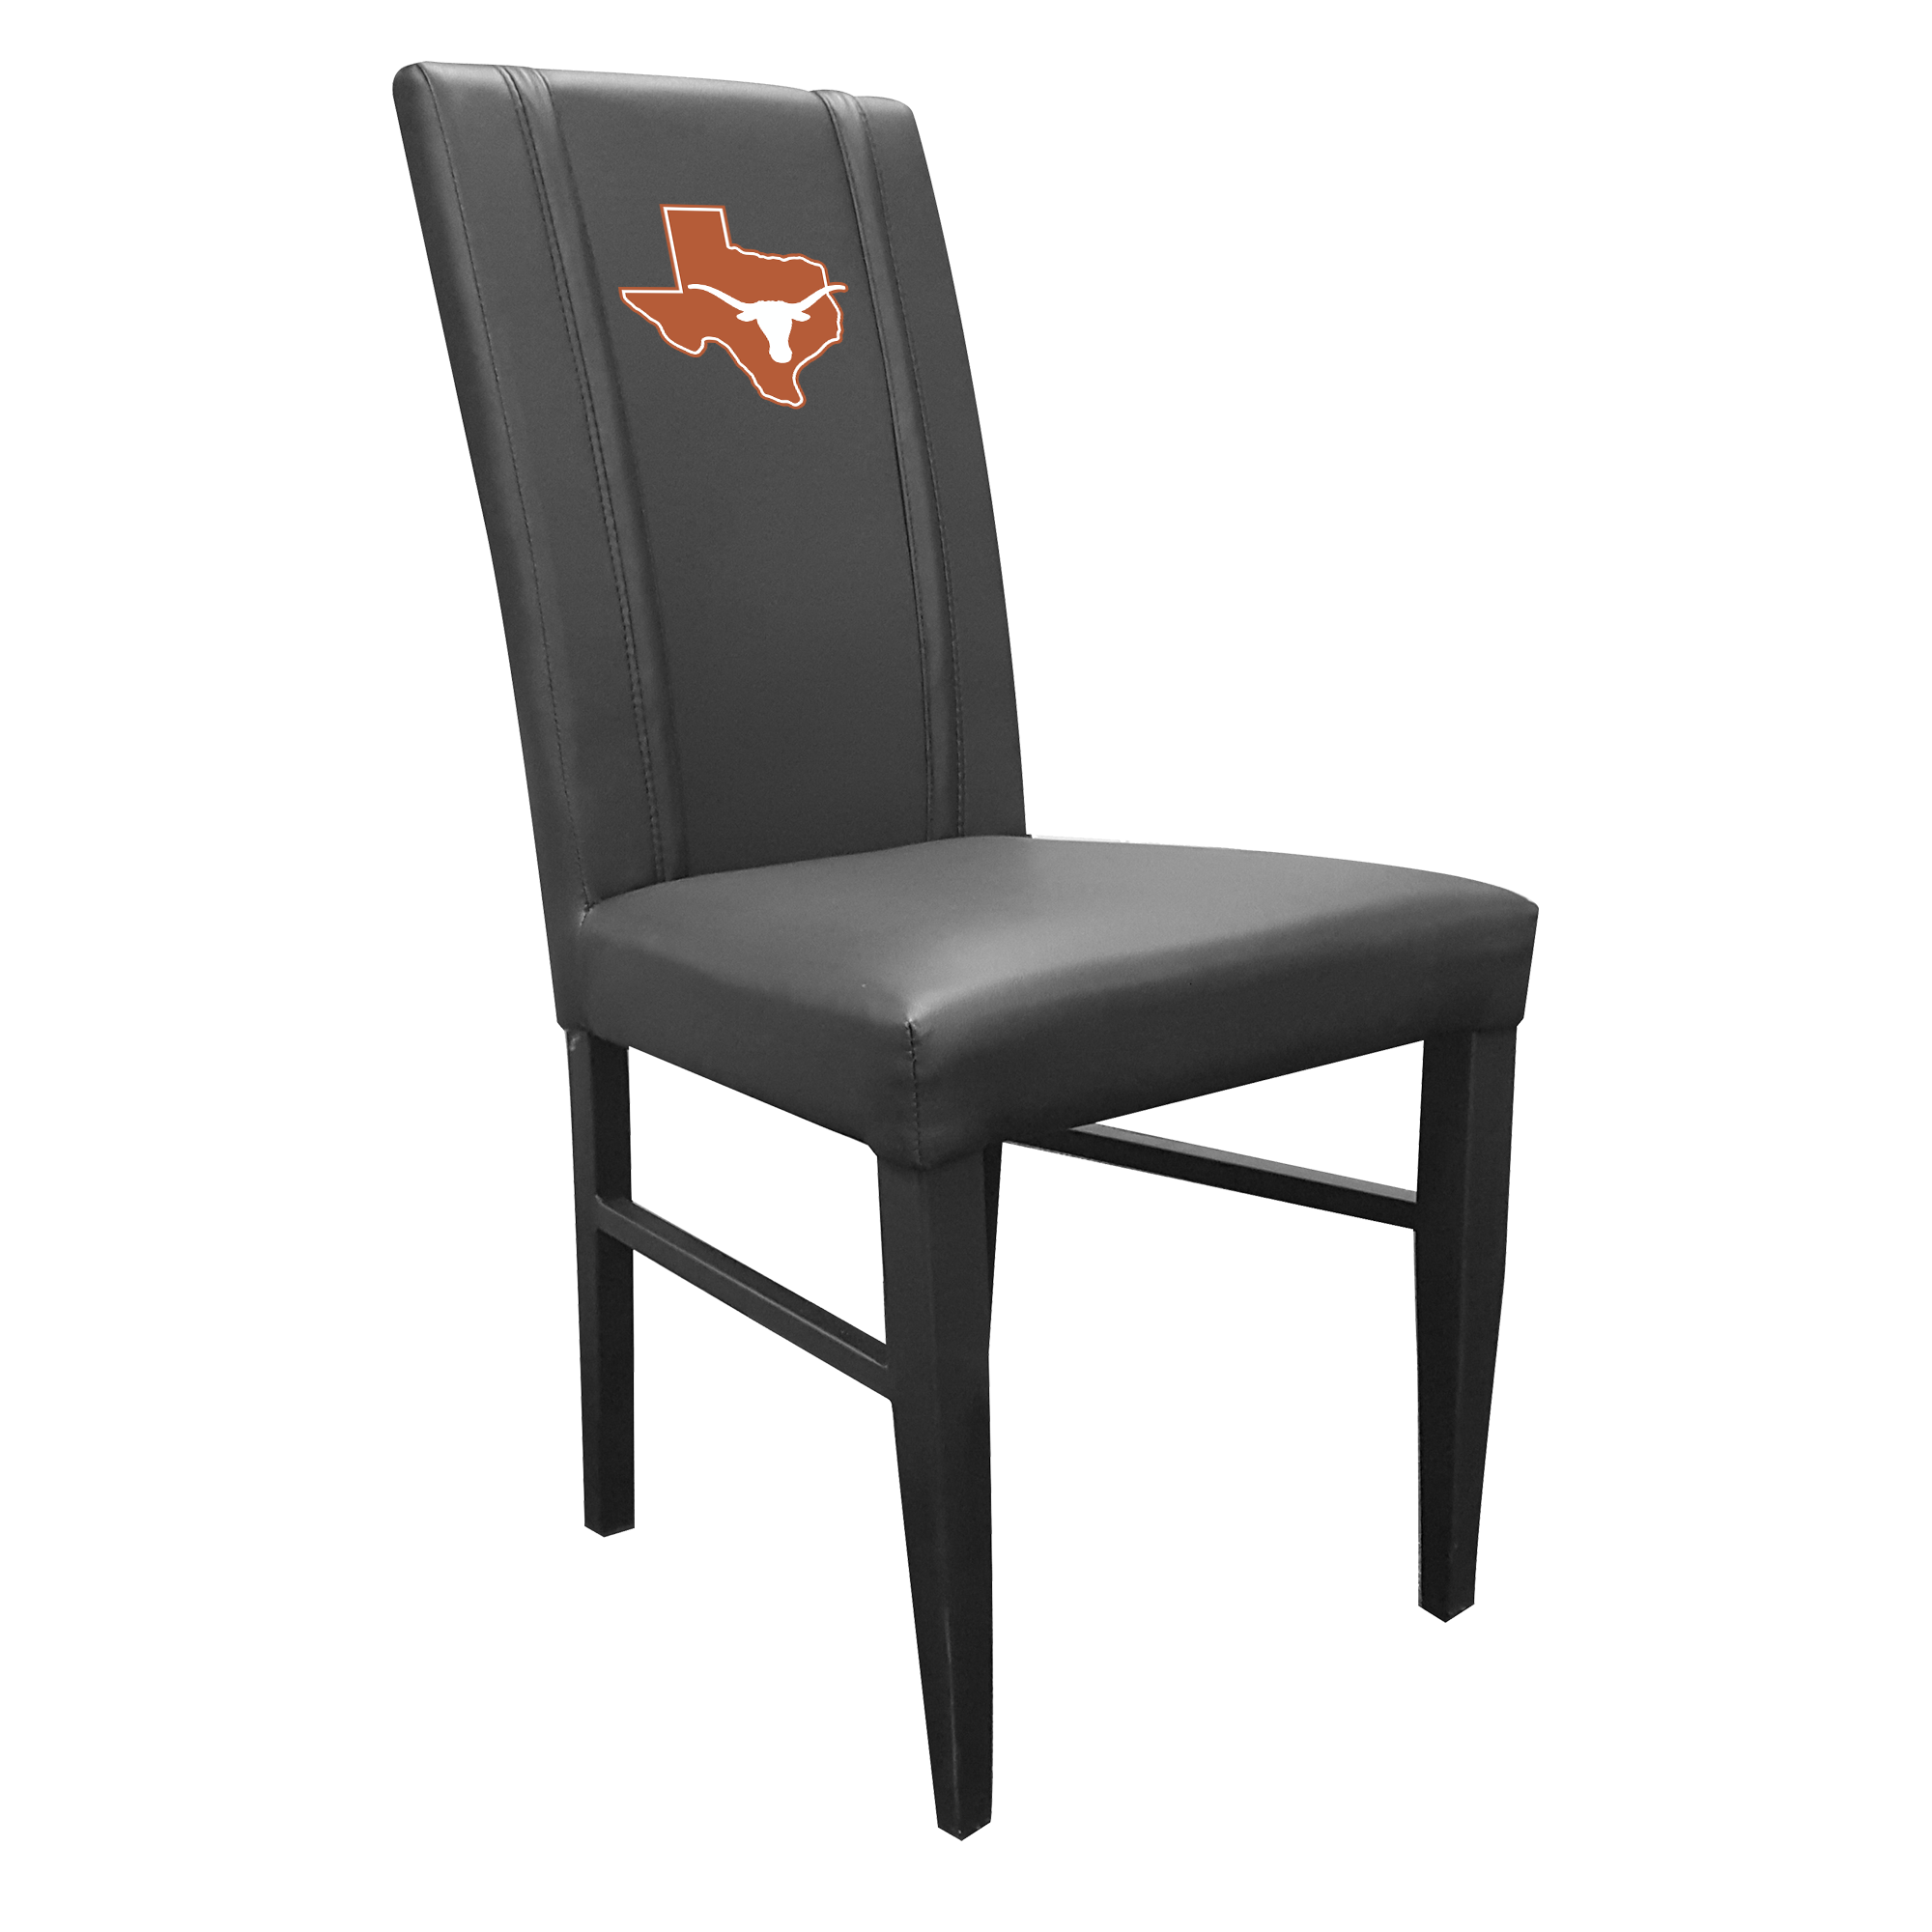 Side Chair 2000 with Texas Longhorns Secondary